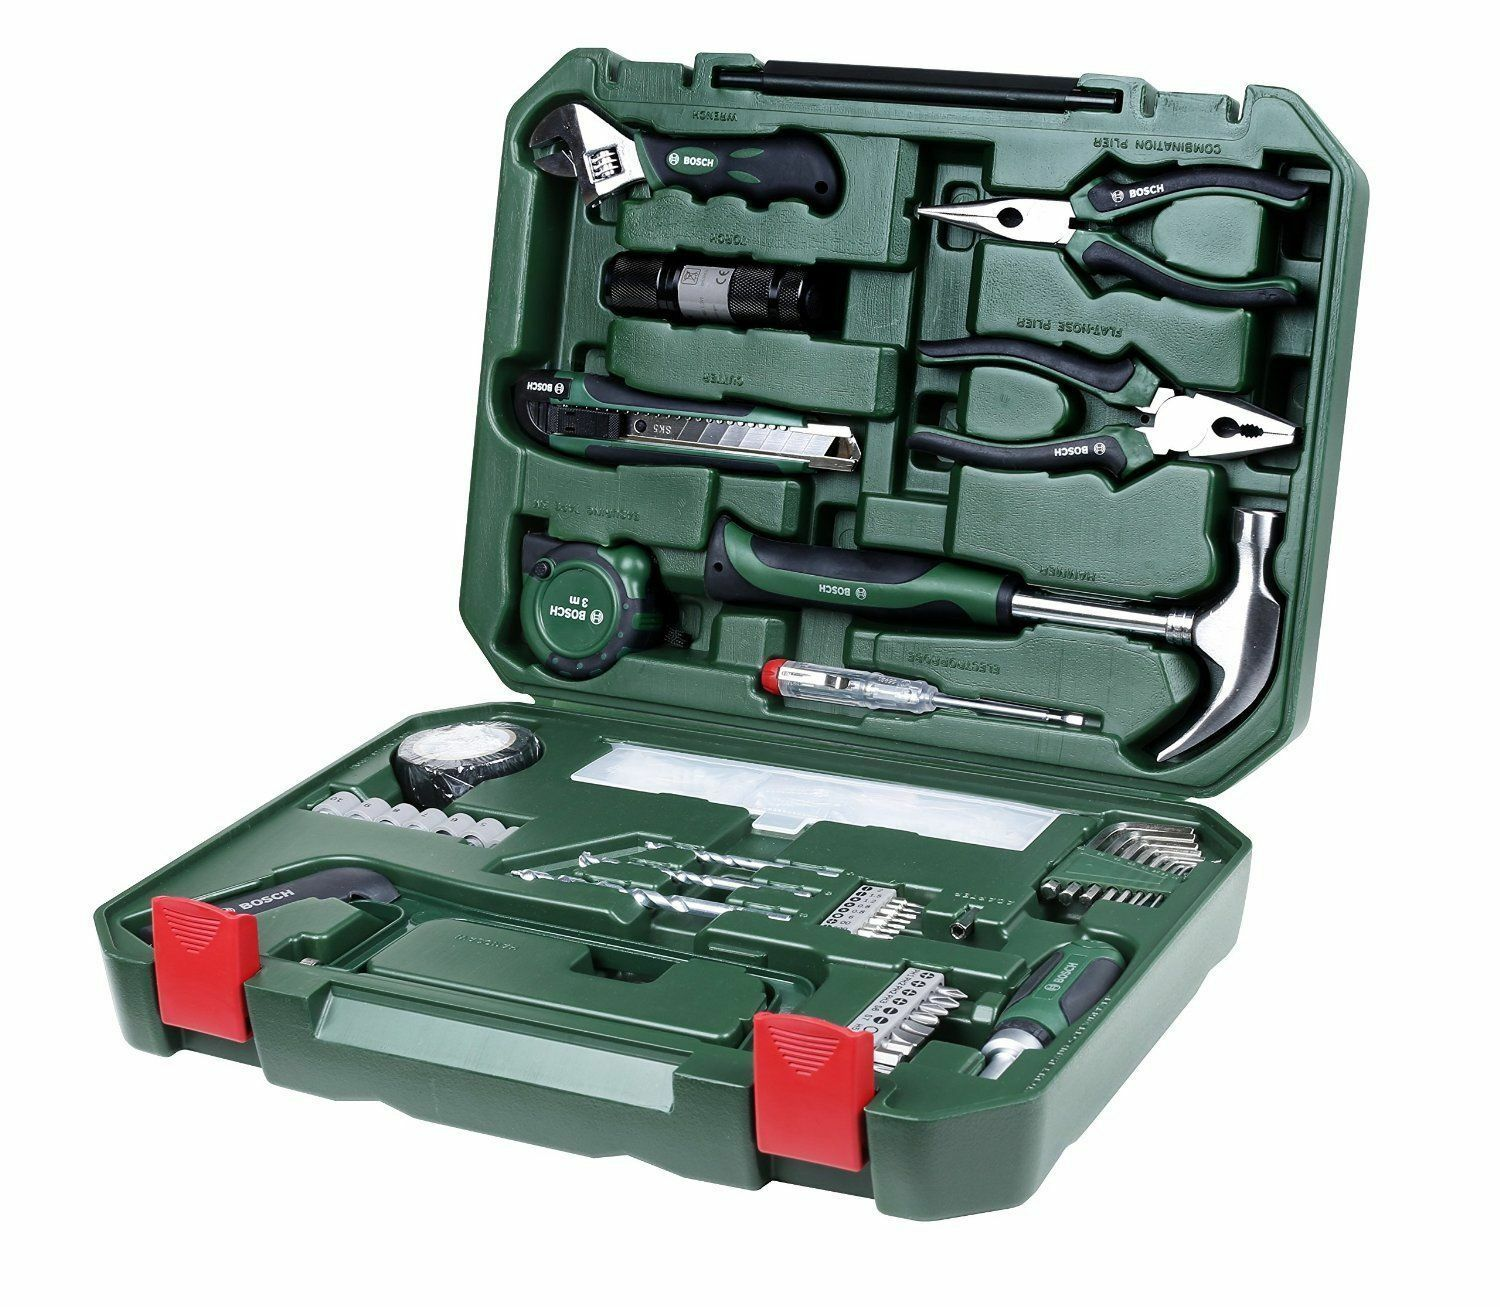 Bosch All in one metal hand tool kit (108 pieces)